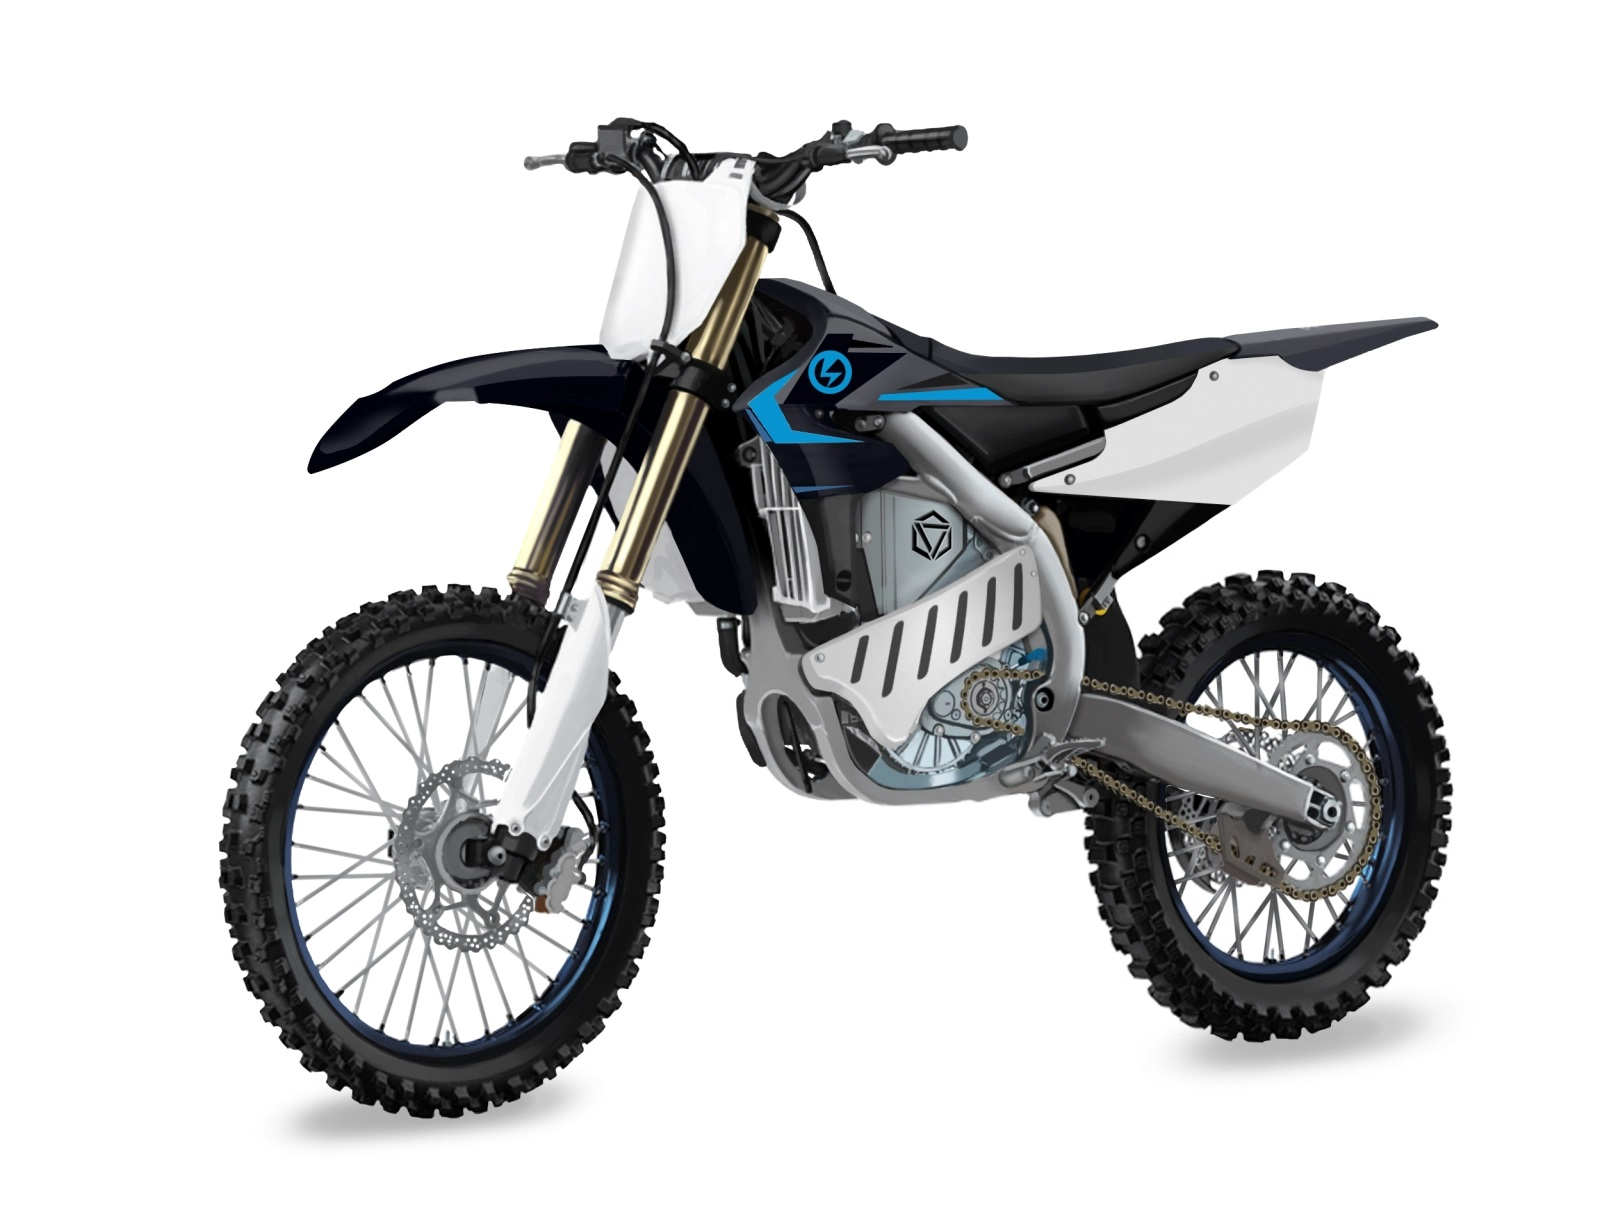 Yamaha Motor Europe, Dohms Projecten and ELEO Make Progress with Testing of the Electric MX